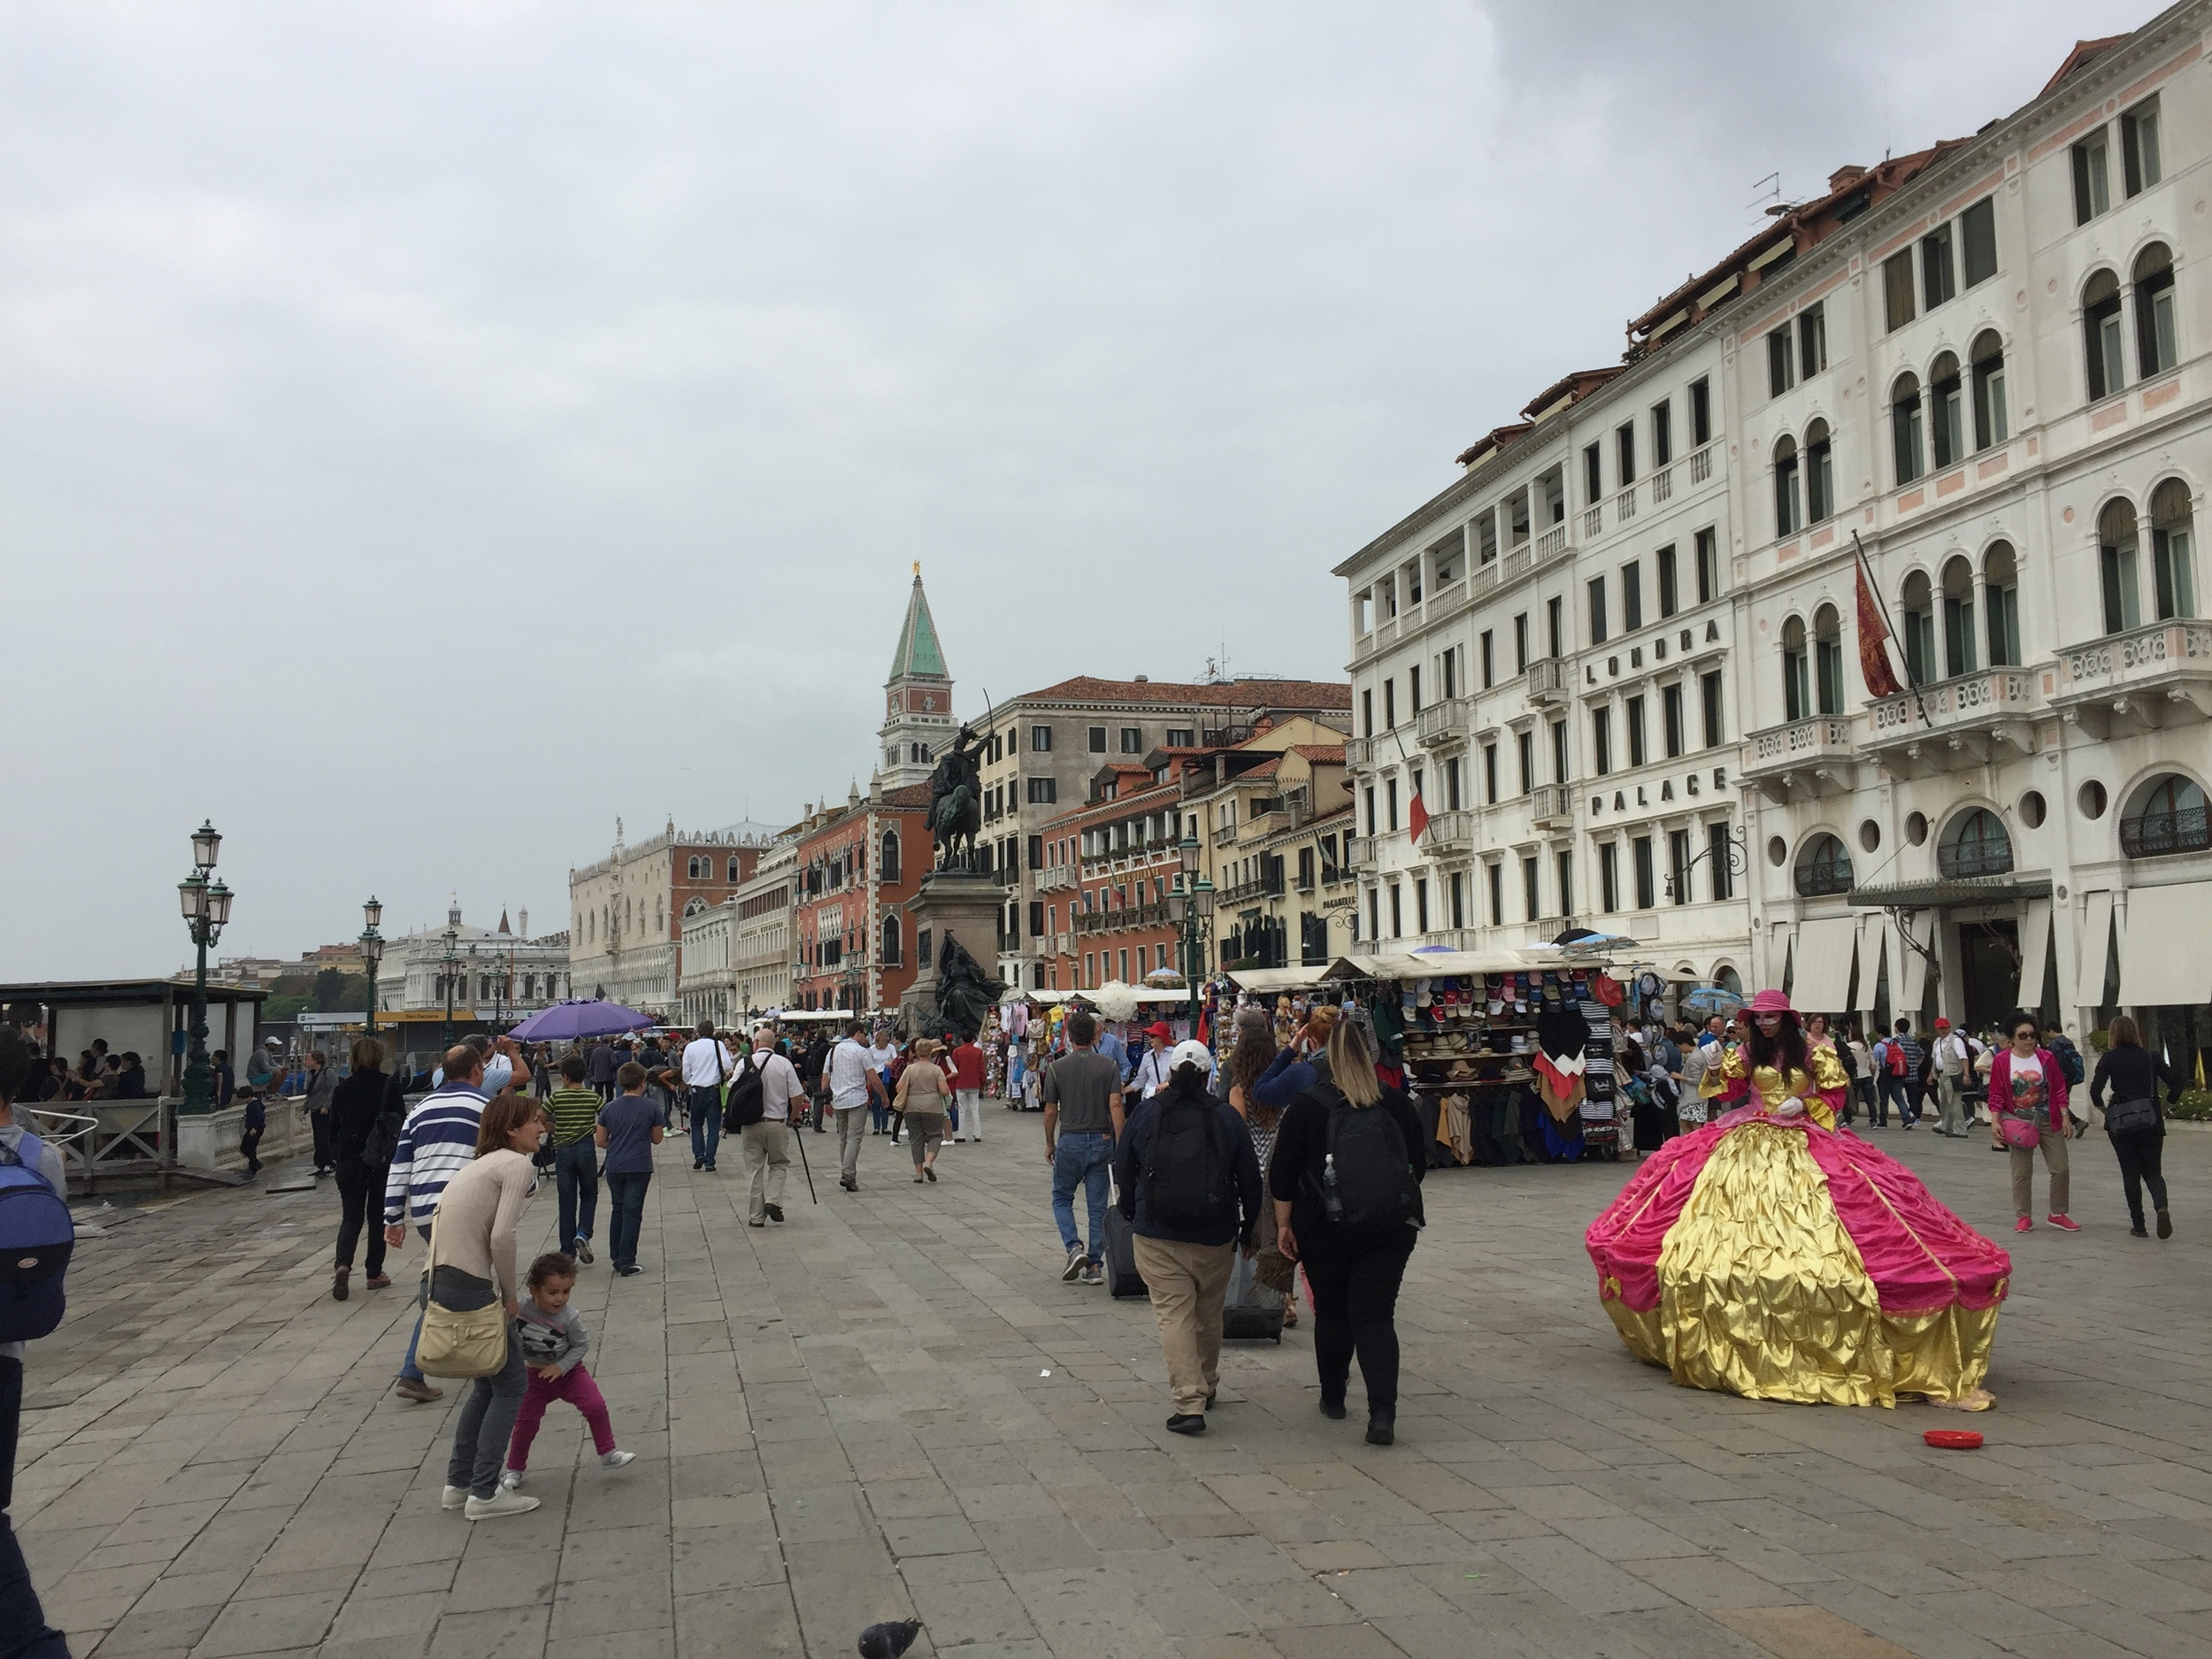 The view after hopping off of the water taxi at San Marco